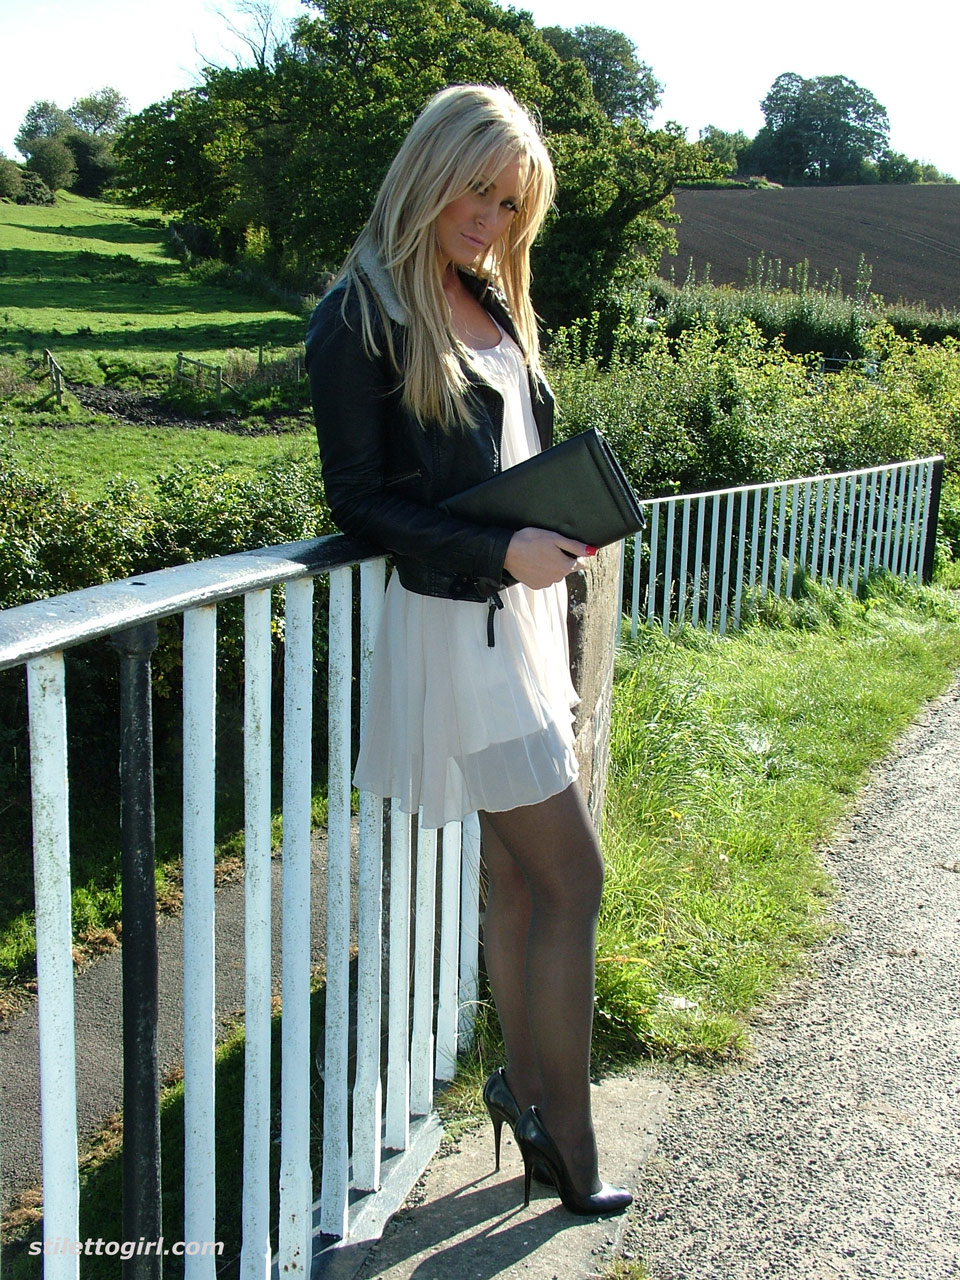 von ormy cougar women Marilynmonroe (31)dating in von ormy christian woman i am very open ask me i am a 30 years old cute woman from texas i have green eyes and blonde hair, .